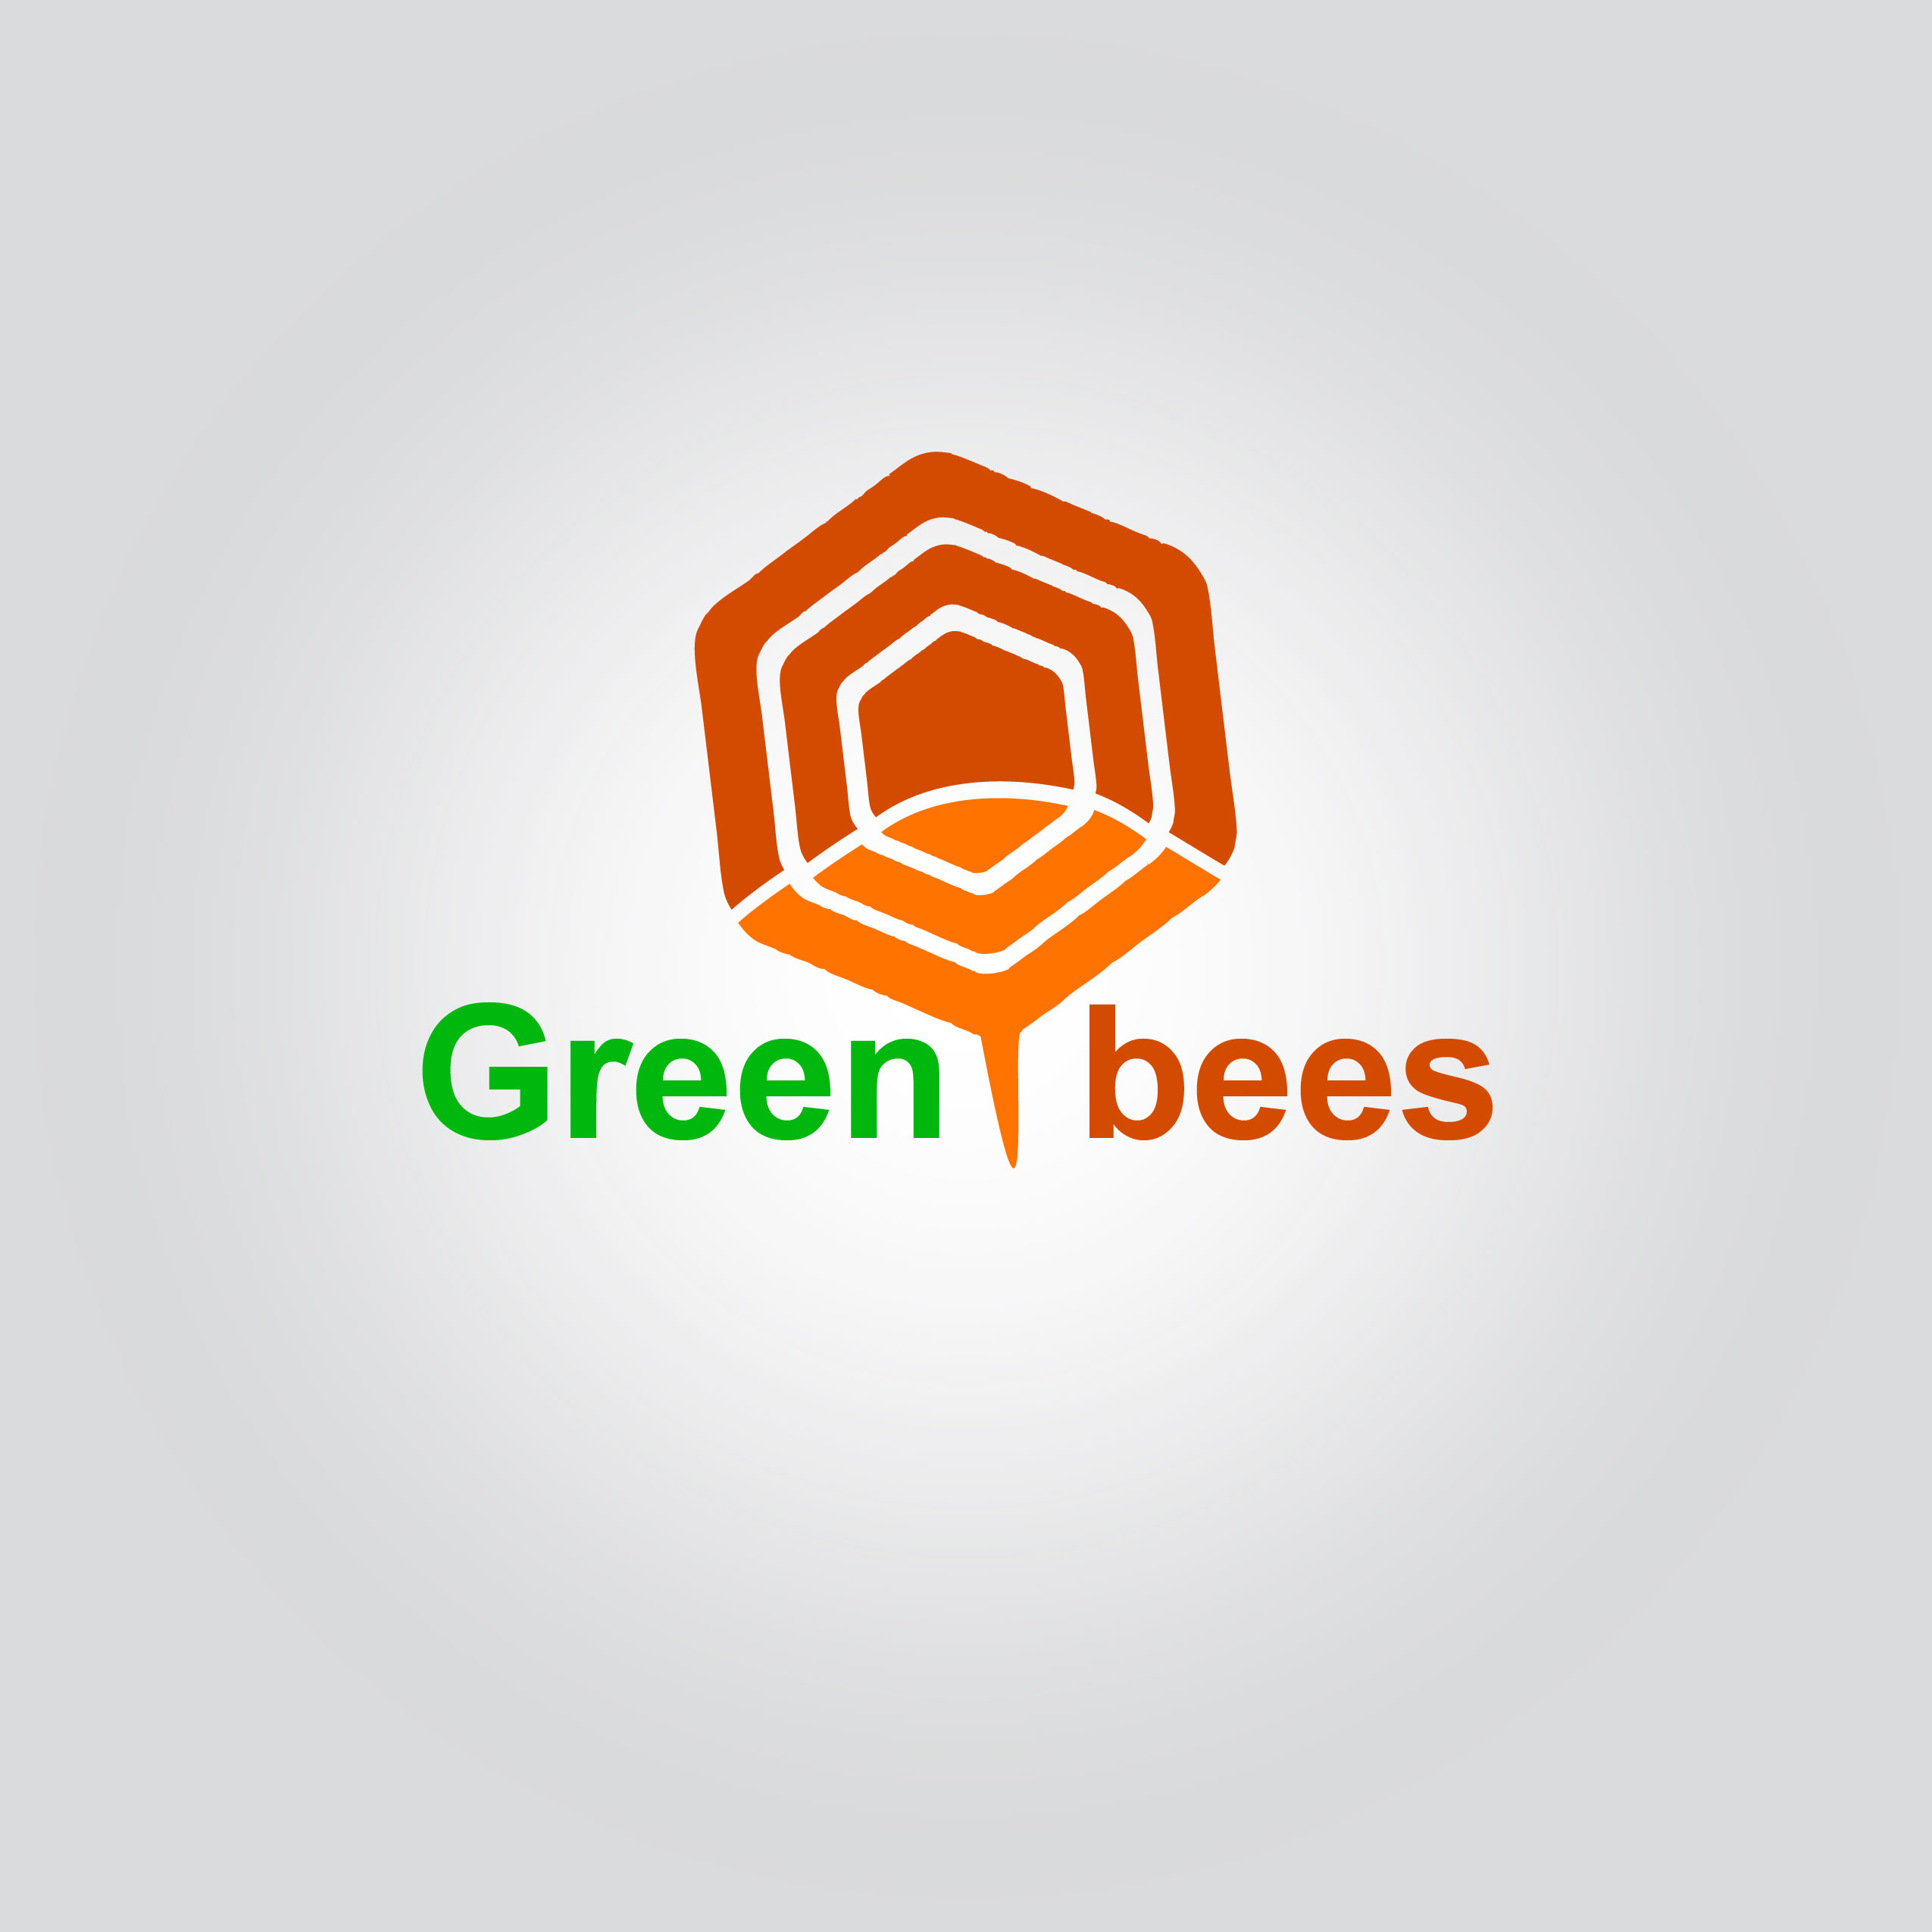 Logo Design by Joseph Neal Lacatan - Entry No. 101 in the Logo Design Contest Greenbees Logo Design.